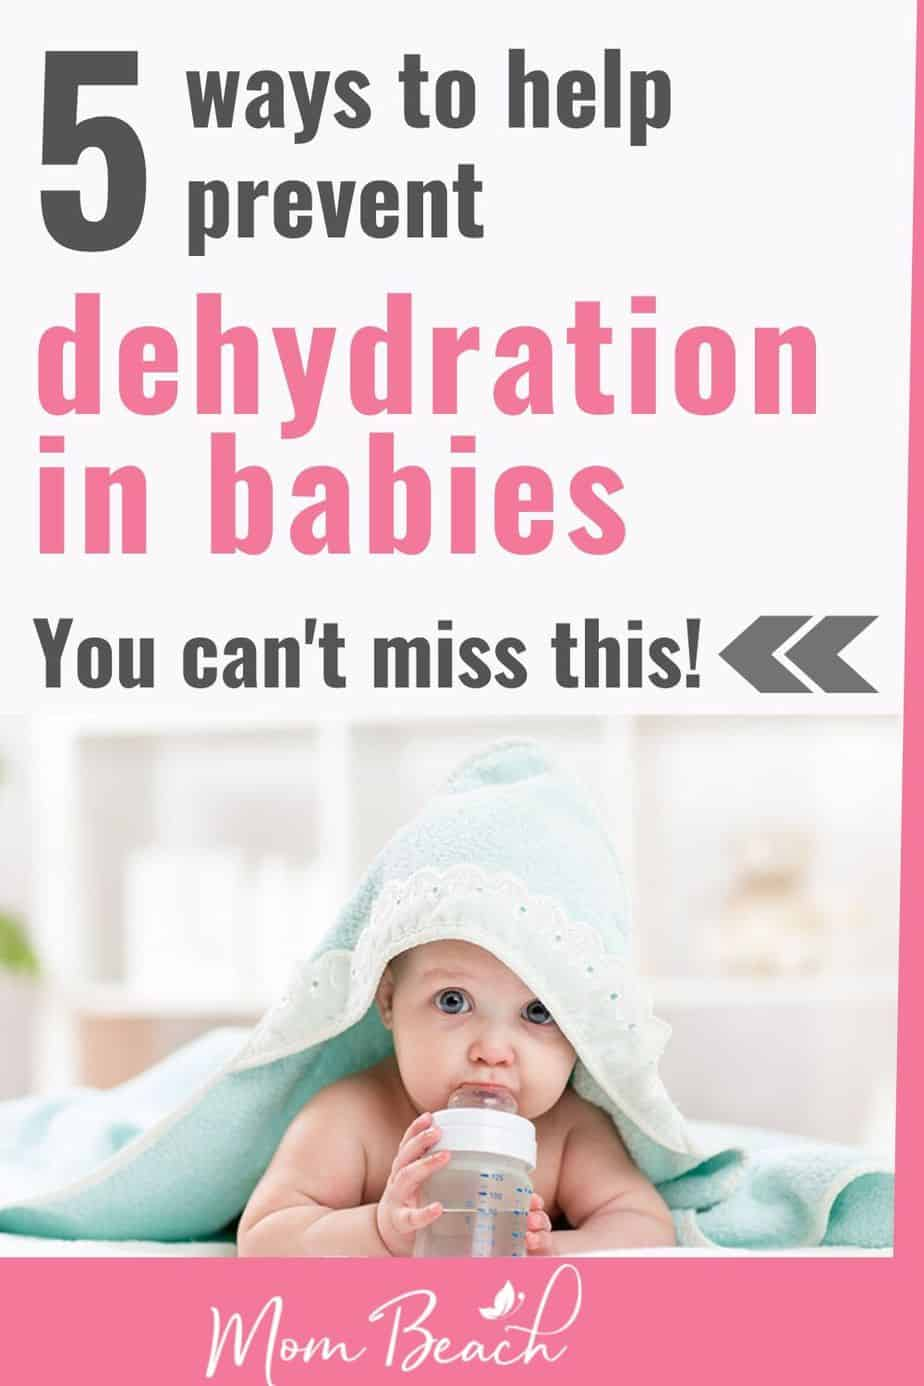 You can't miss this important information on how to prevent your baby from being dehydrated. Several babies each year die from dehydration. Help keep your baby safe and well hydrated with these 5 important tips. #preventdehydrationinbabies #parentingtips #preventdehydrationinkids #howtopreventdehydrationinbabies #babytips